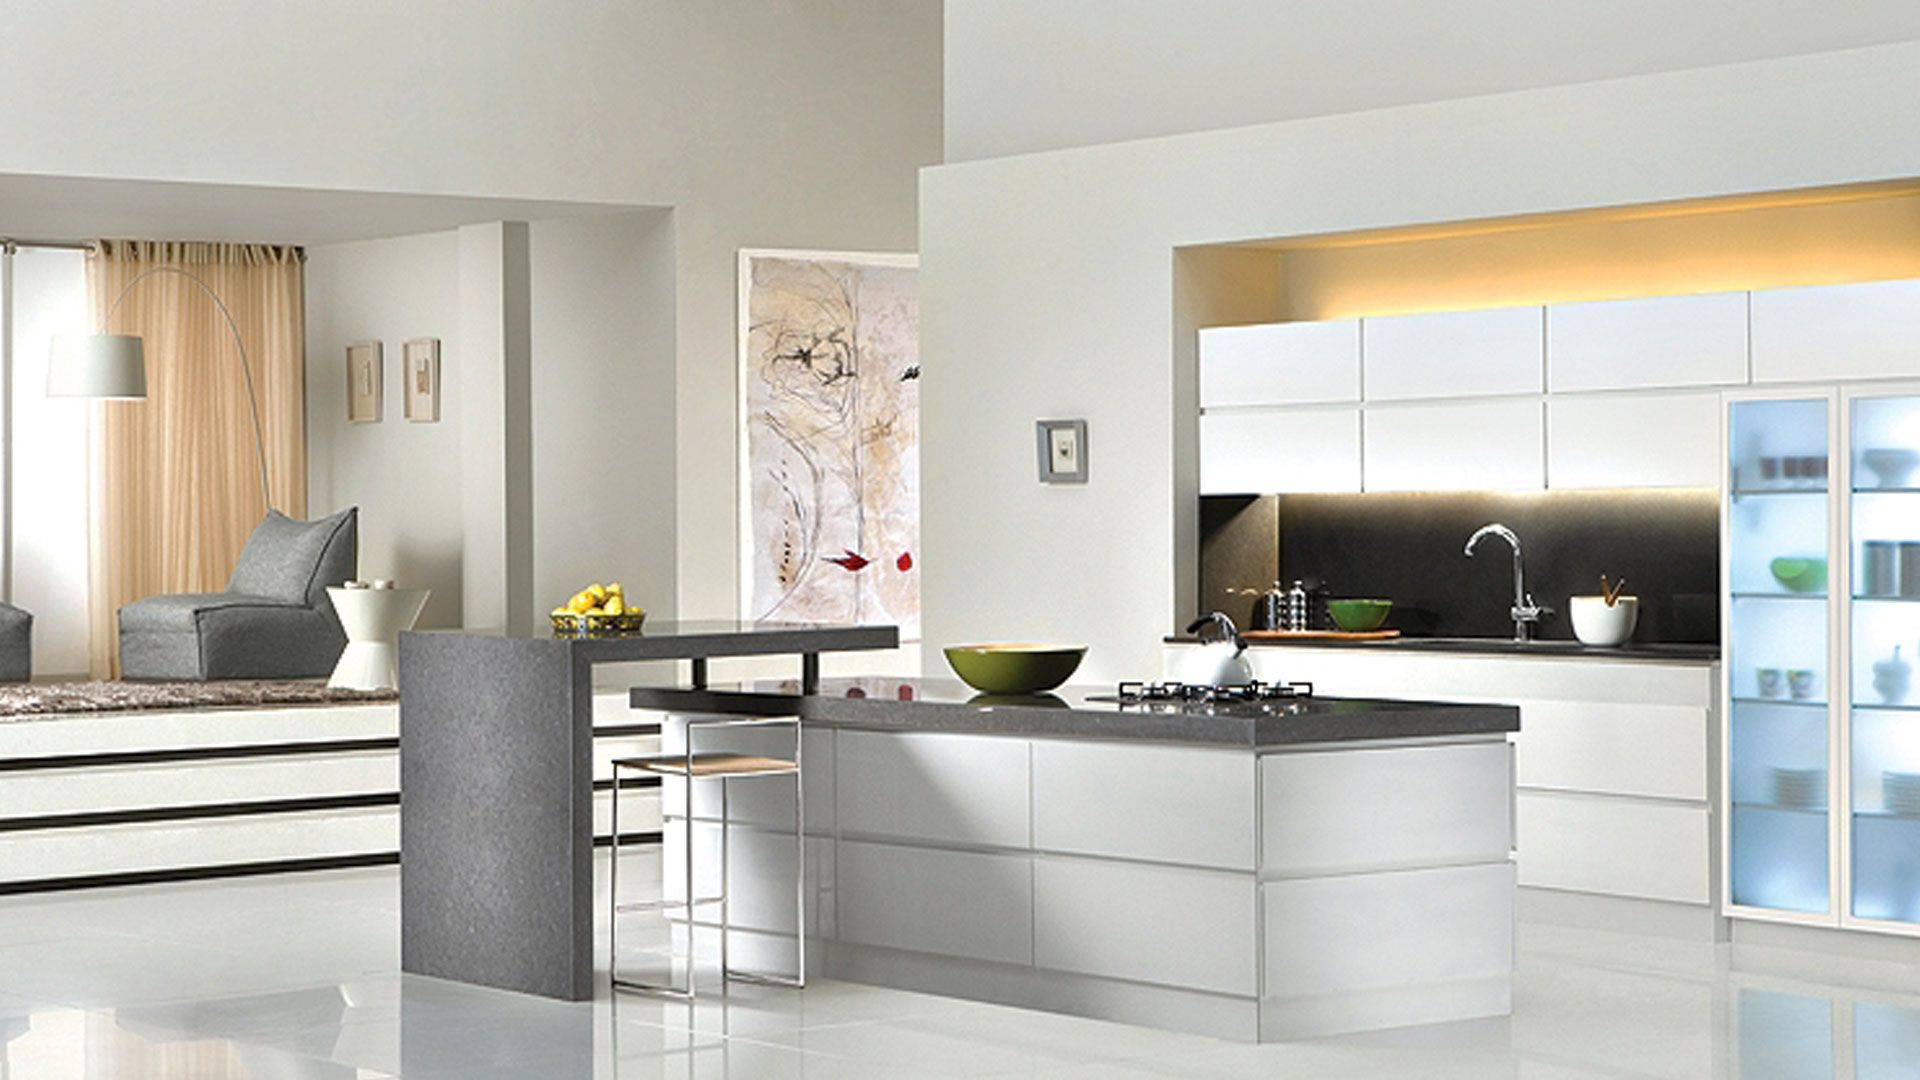 Floating on kitchen design tool home depot home and landscaping design - Magnificent Modern Kitchen Design Images Kitchen Home Decoration Ideas Pinterest Modern Kitchen Designs Kitchen Design And Kitchens